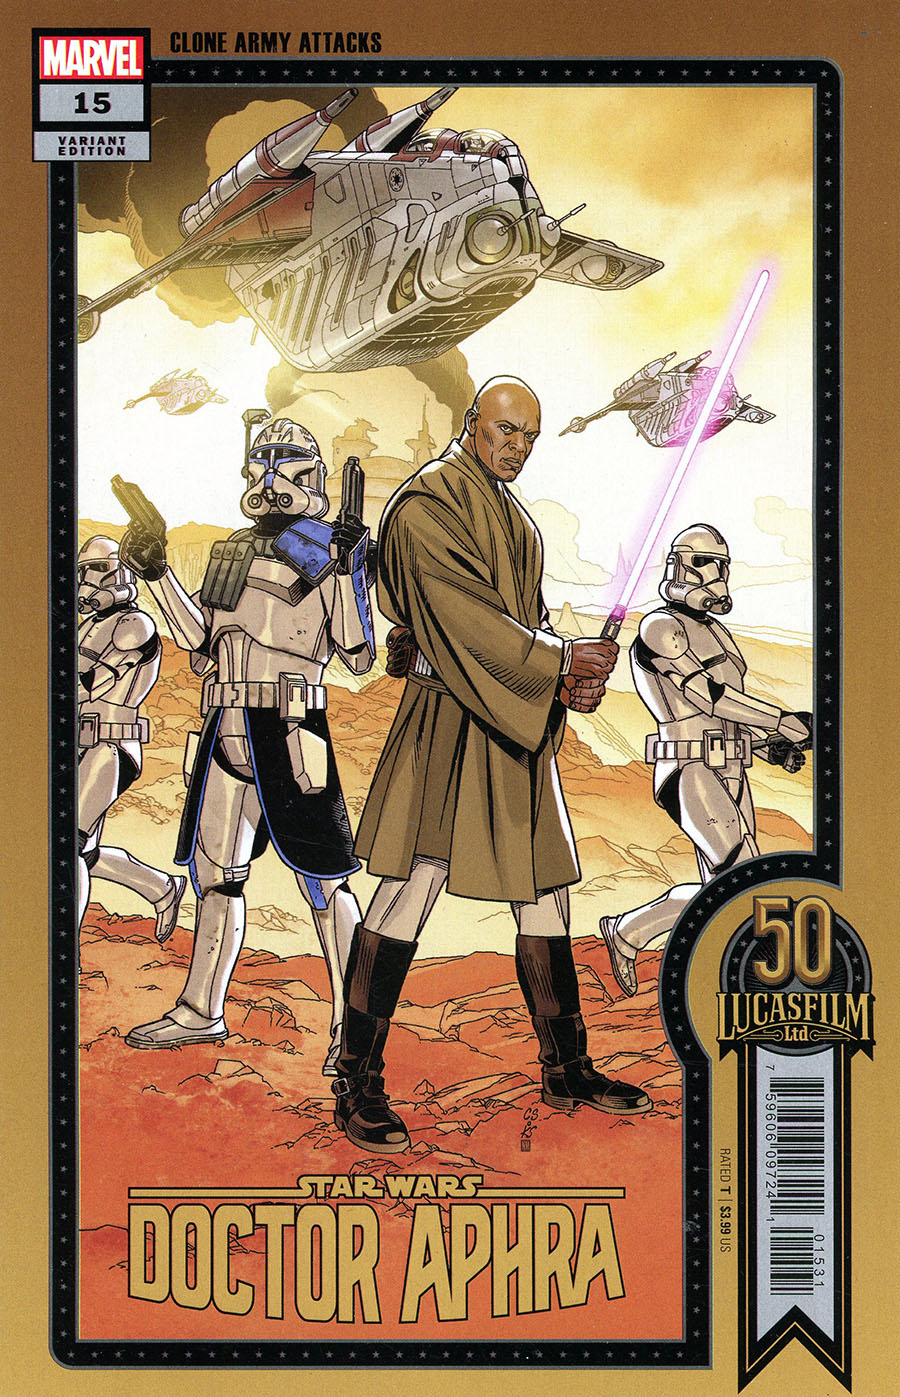 Doctor Aphra #15 (Chris Sprouse Lucasfilm 50th Anniversary Variant Cover) (13.10.2021)